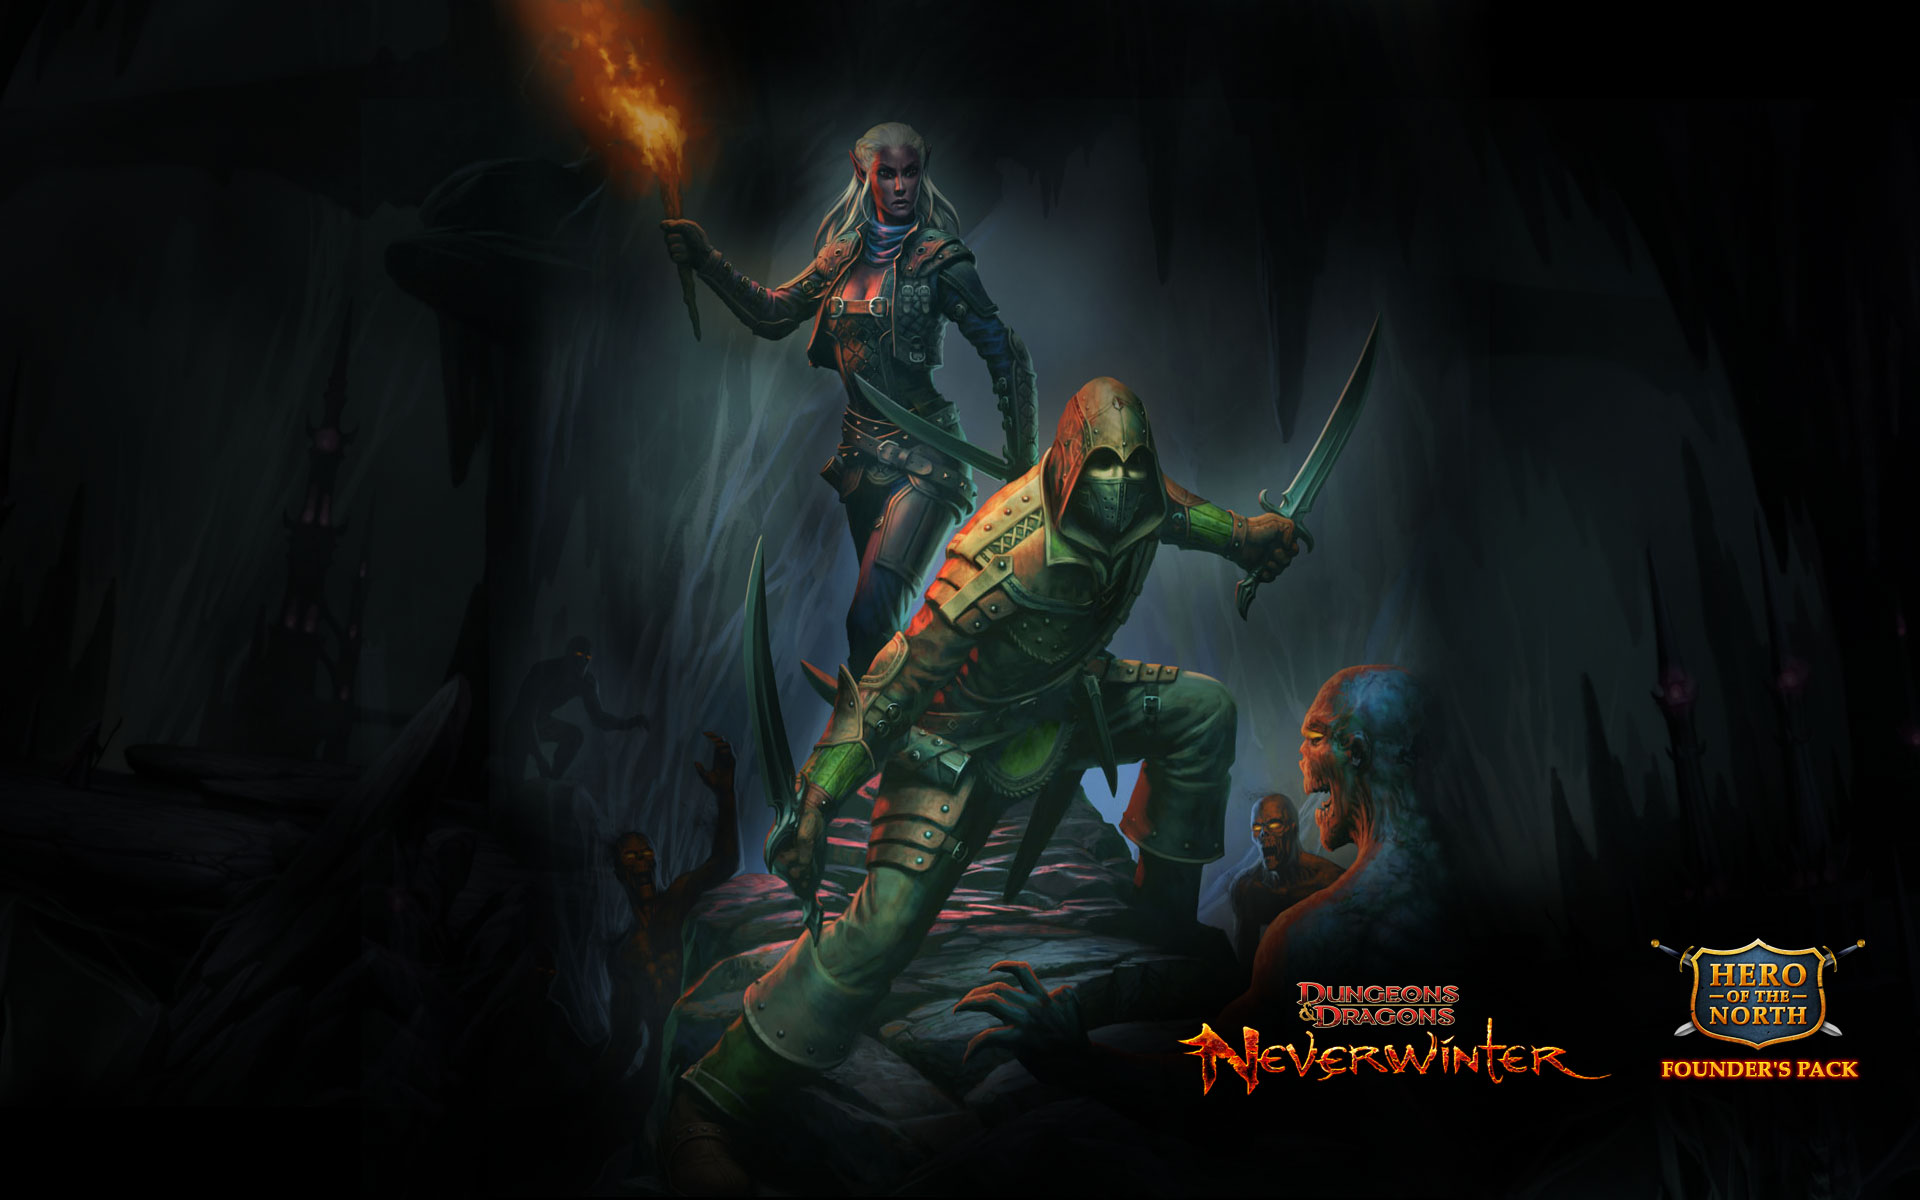 Dungeons And Dragons Wallpaper 1920x1080 Deadly trickster rogue 1920x1200